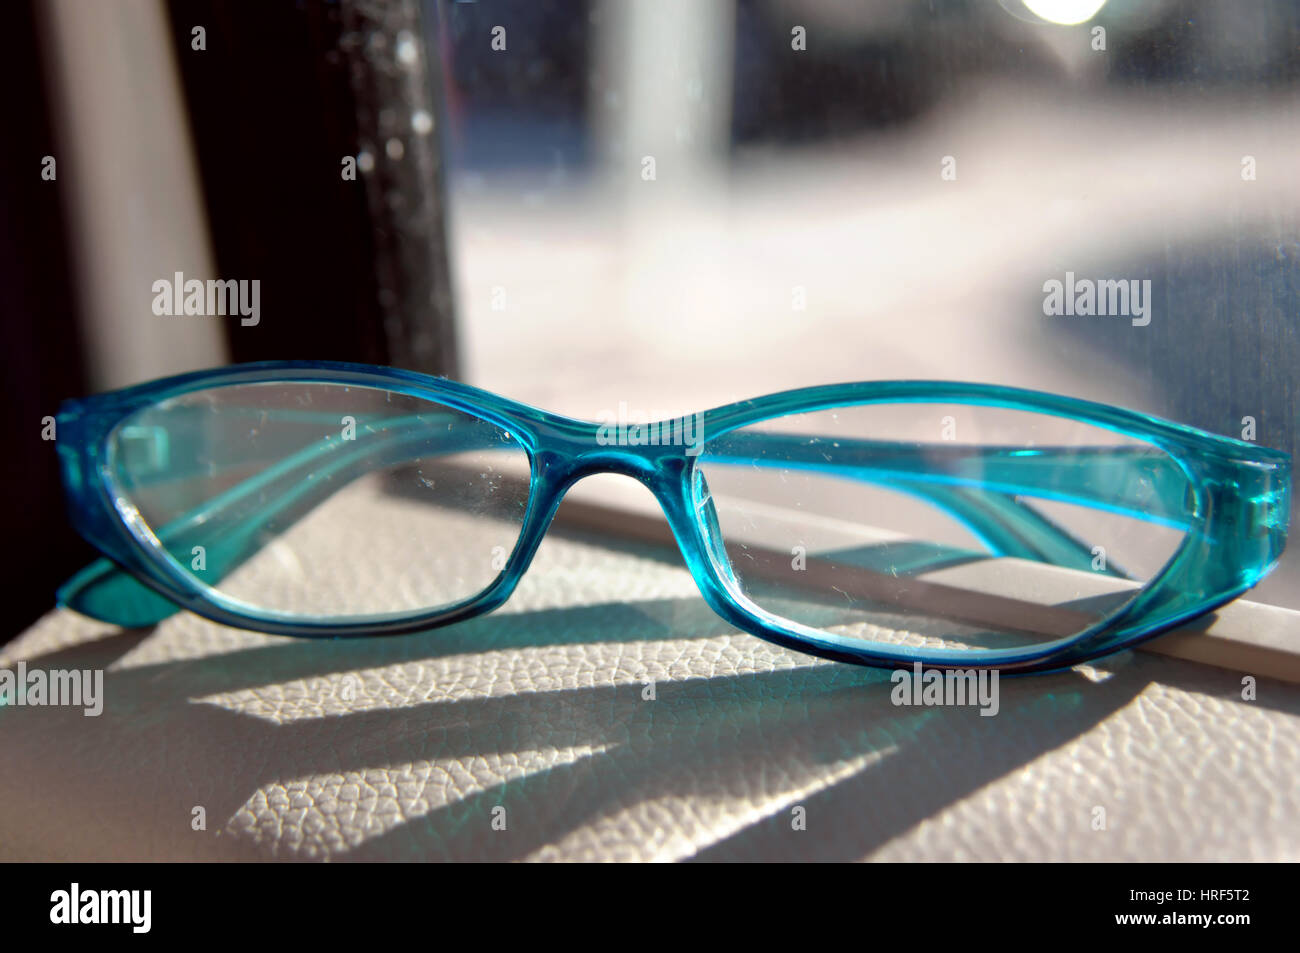 Seeing Clearly Stockfotos & Seeing Clearly Bilder - Alamy